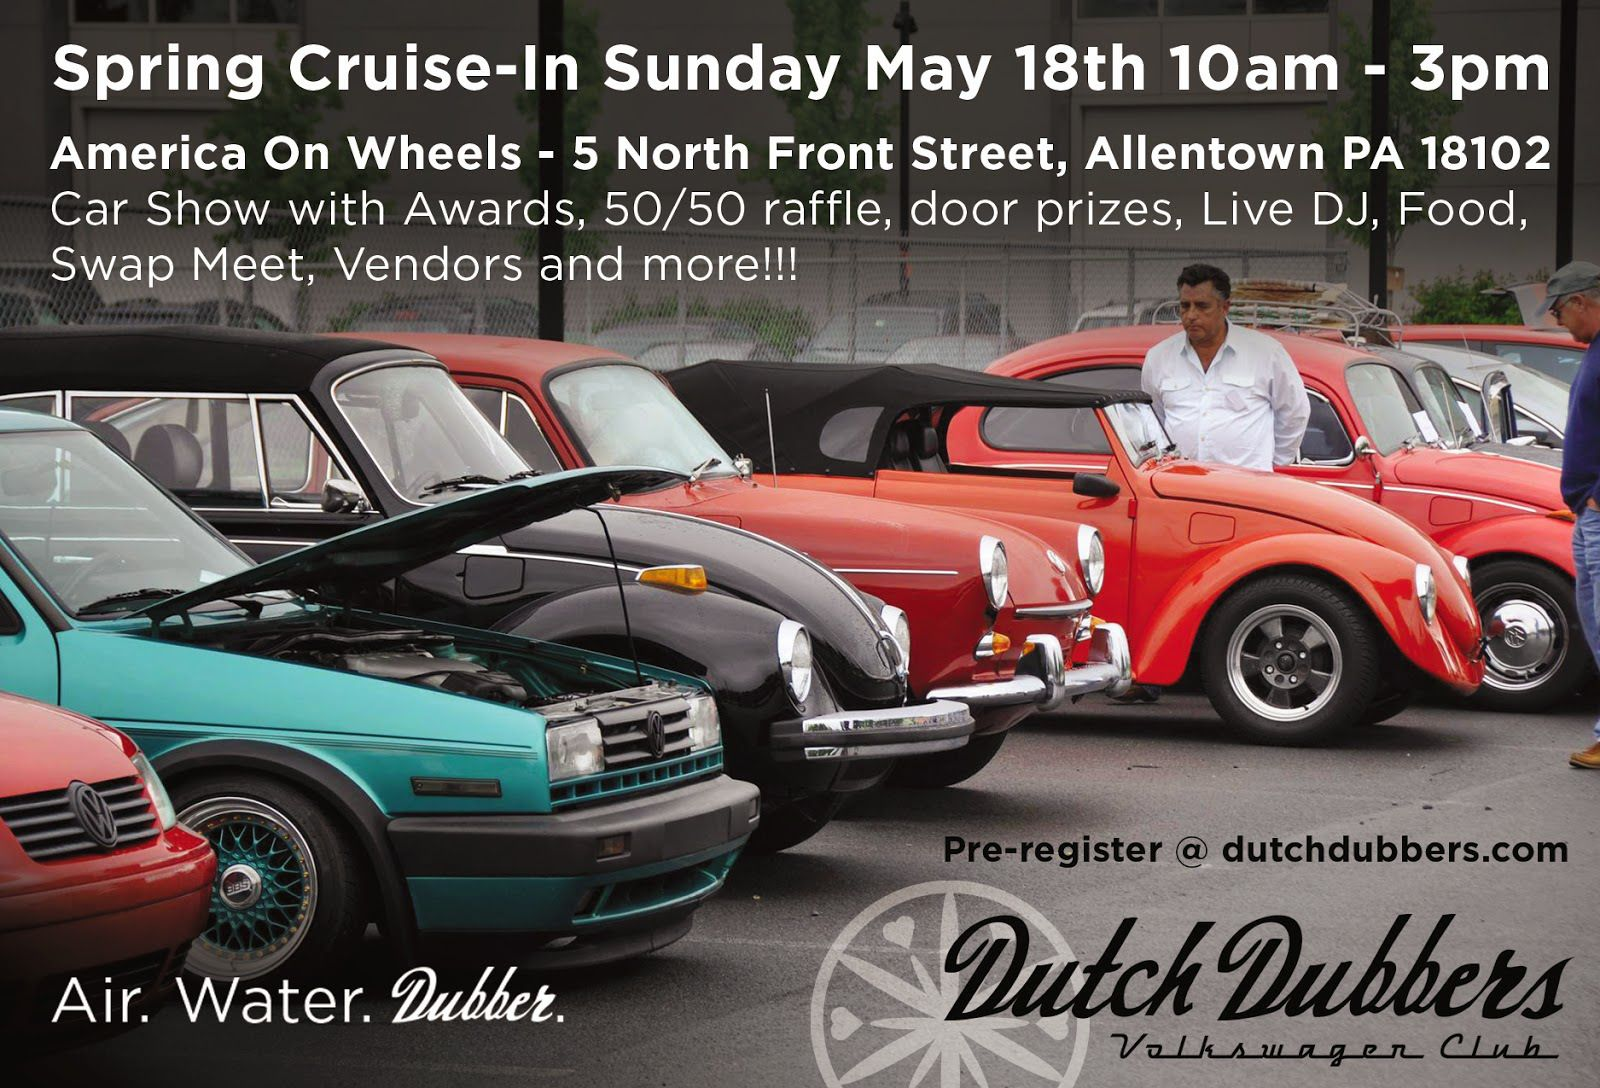 Dutch Dubbers 6th Annual Spring Cruise In May 18th 2017 Allentown Pa 18102 U S A Ed By The Lehigh Valley Vw Club